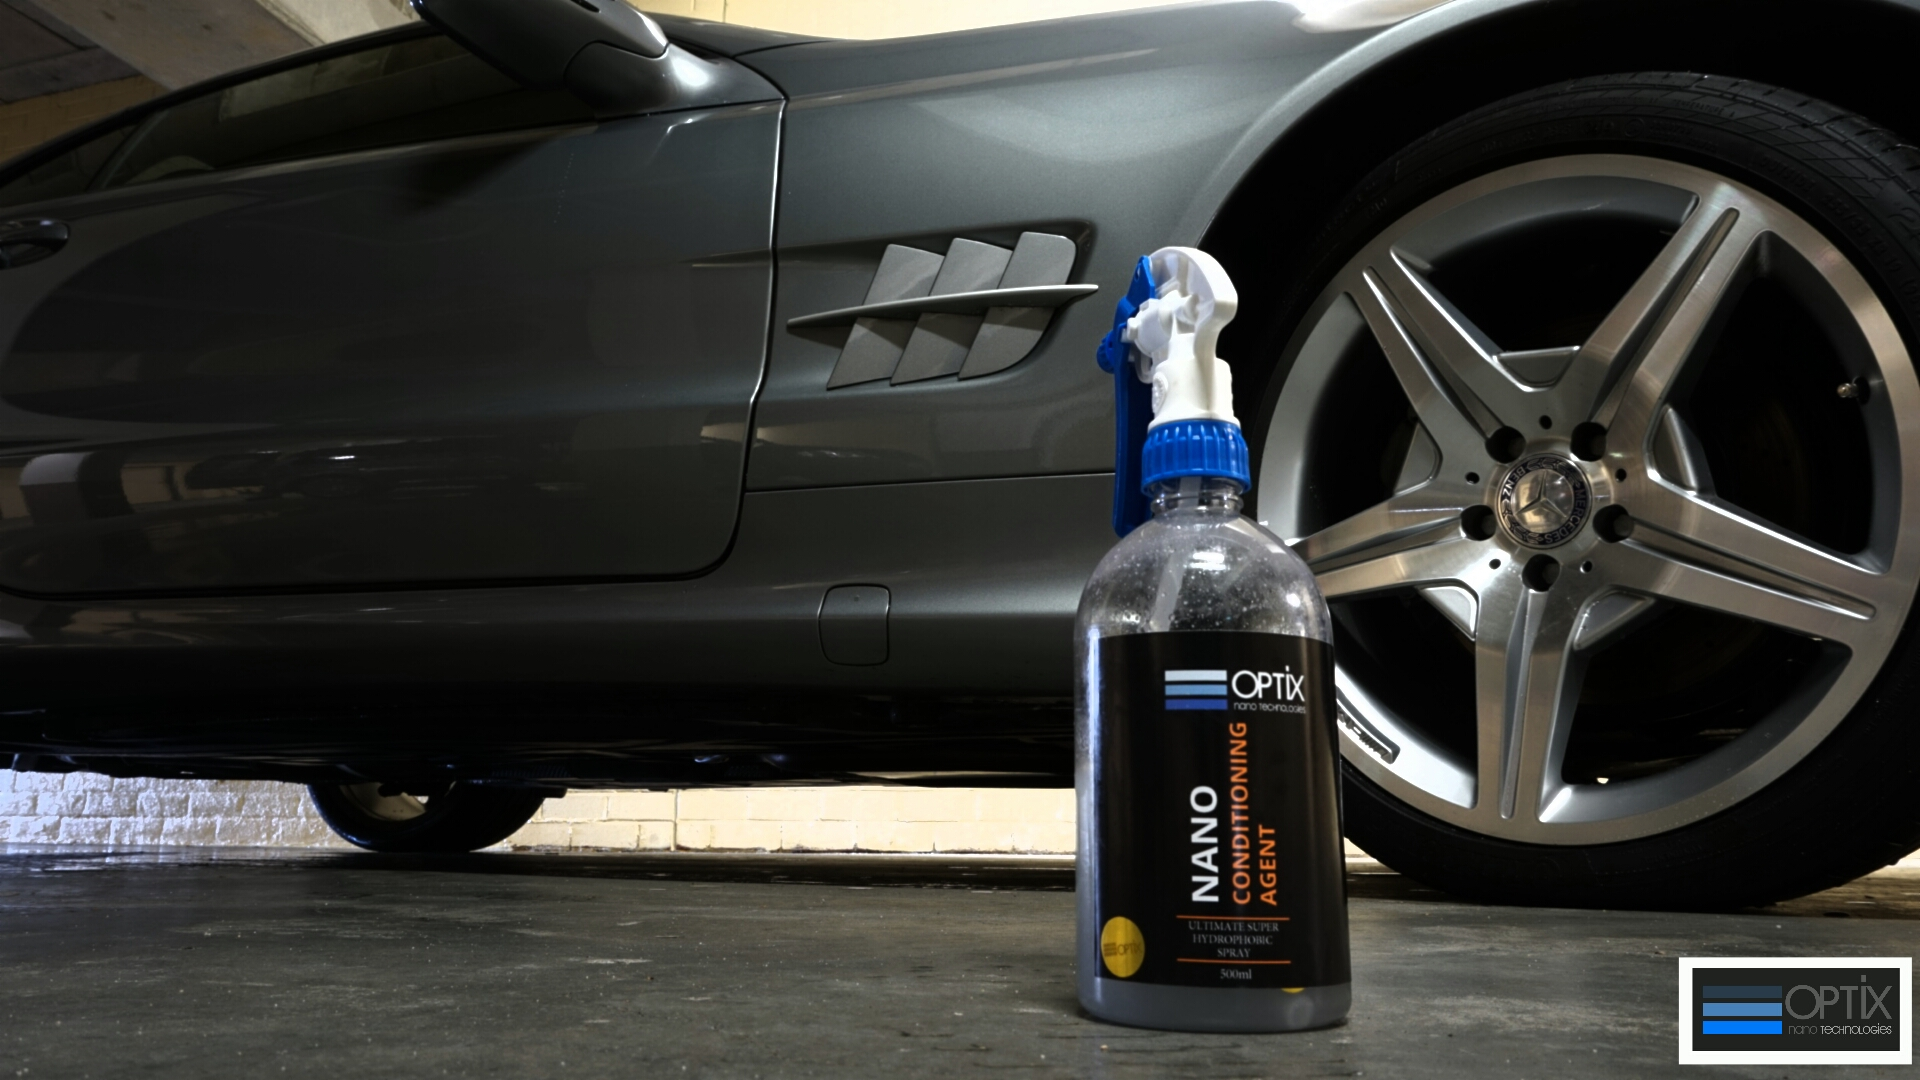 OPTIX Conditioning Agent restores the candy gloss of the OP888 coating